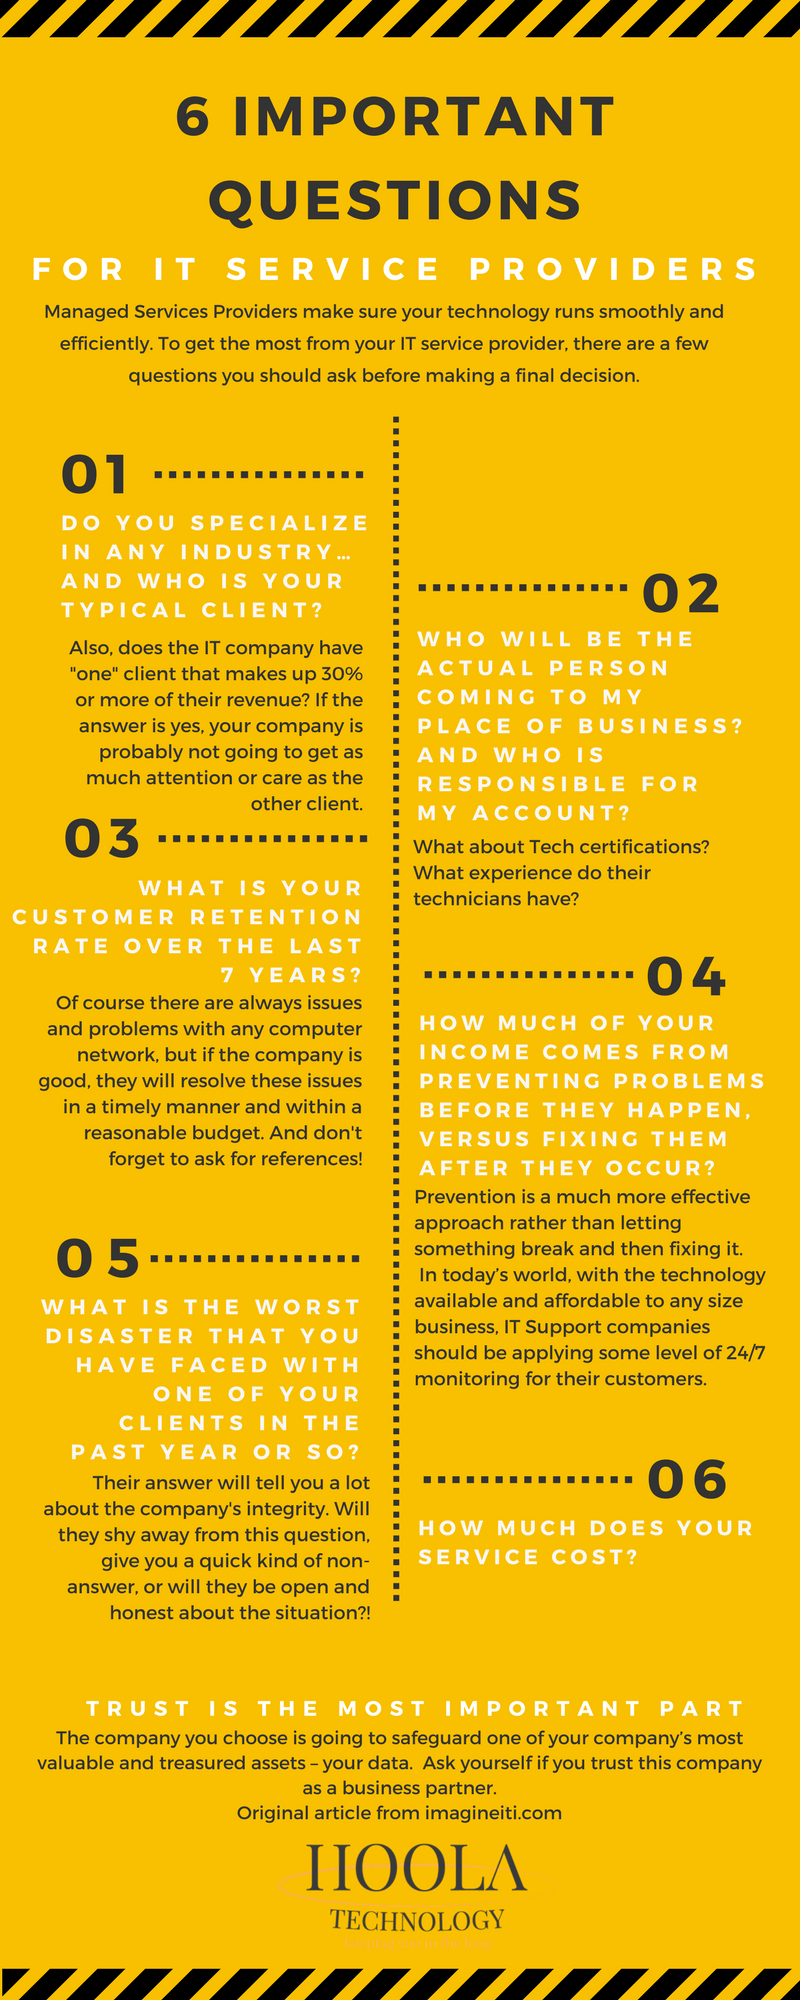 6 questions for IT infographic